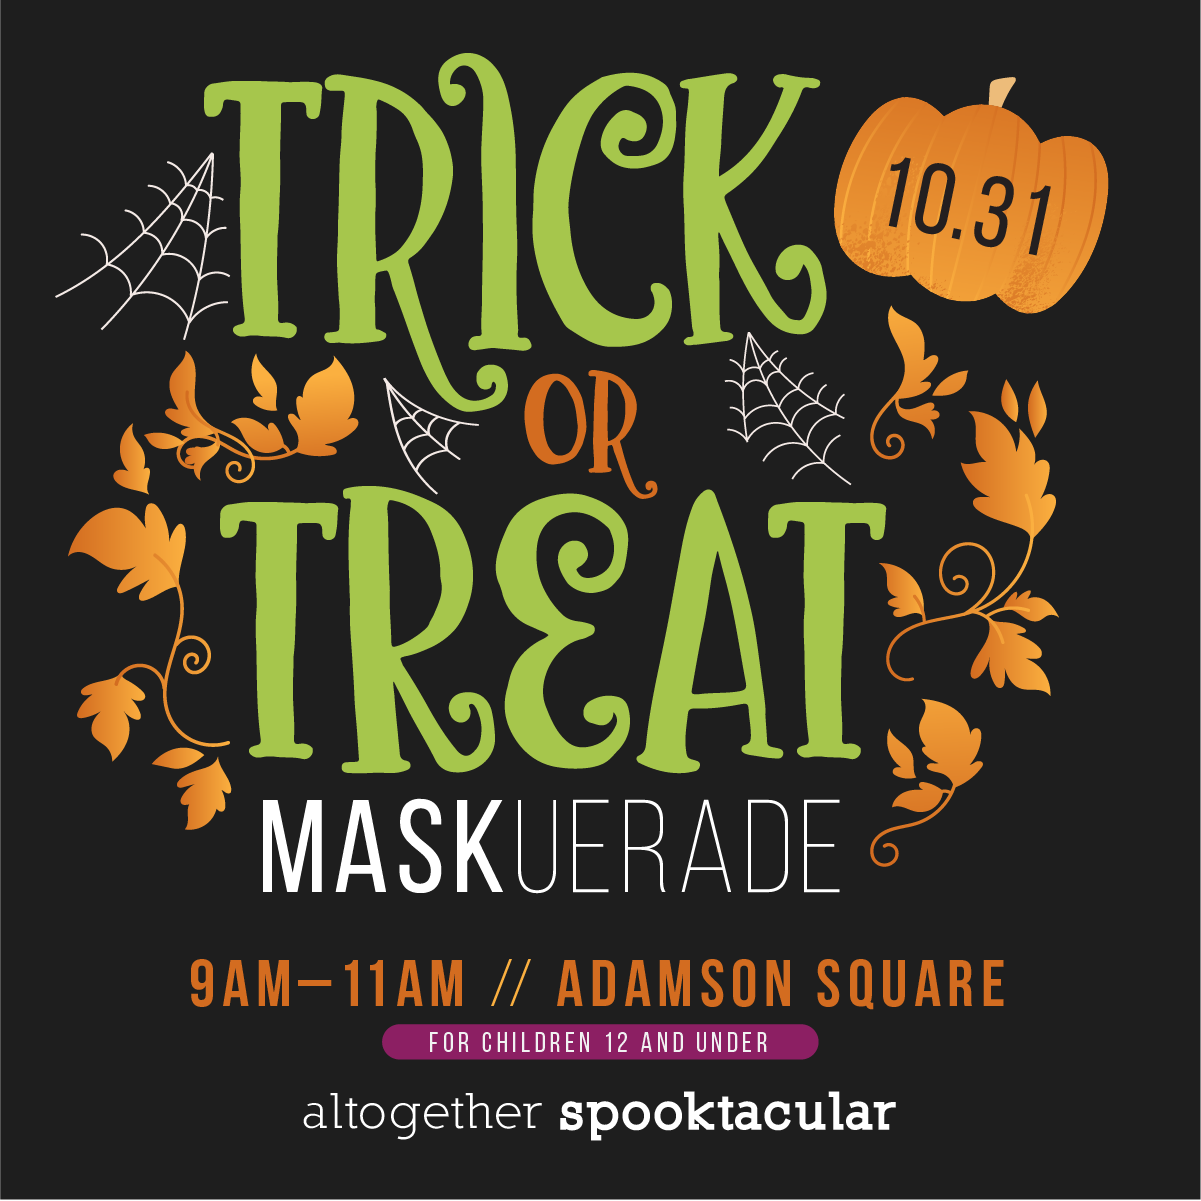 Trick-or-Treat 'Mask'uerade Downtown